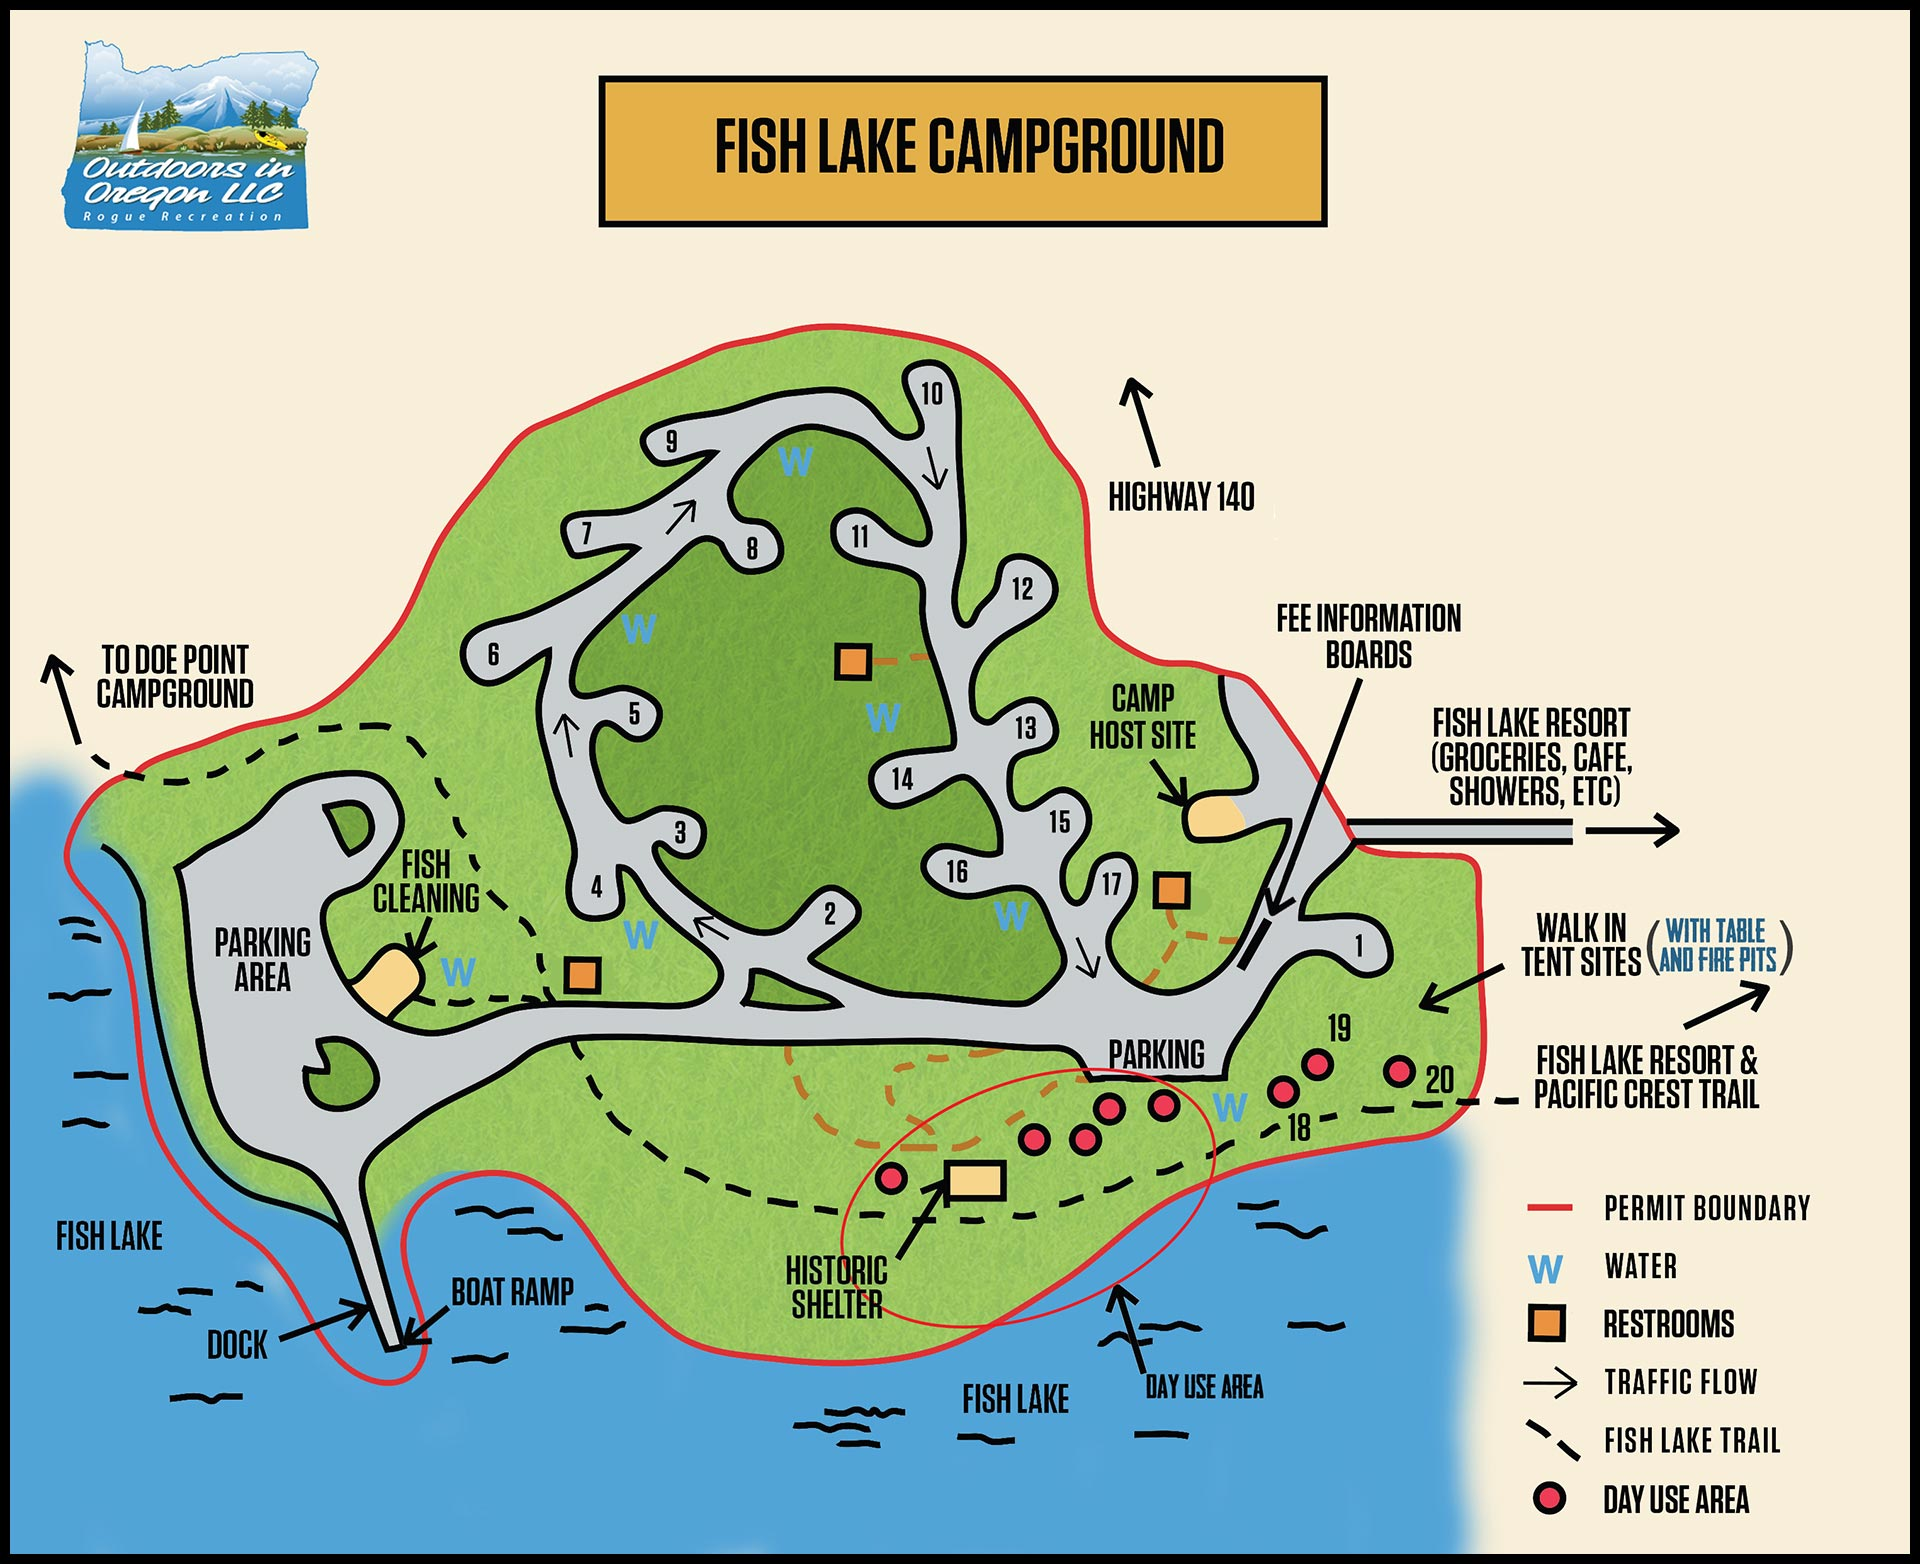 Fish Lake Campground Map